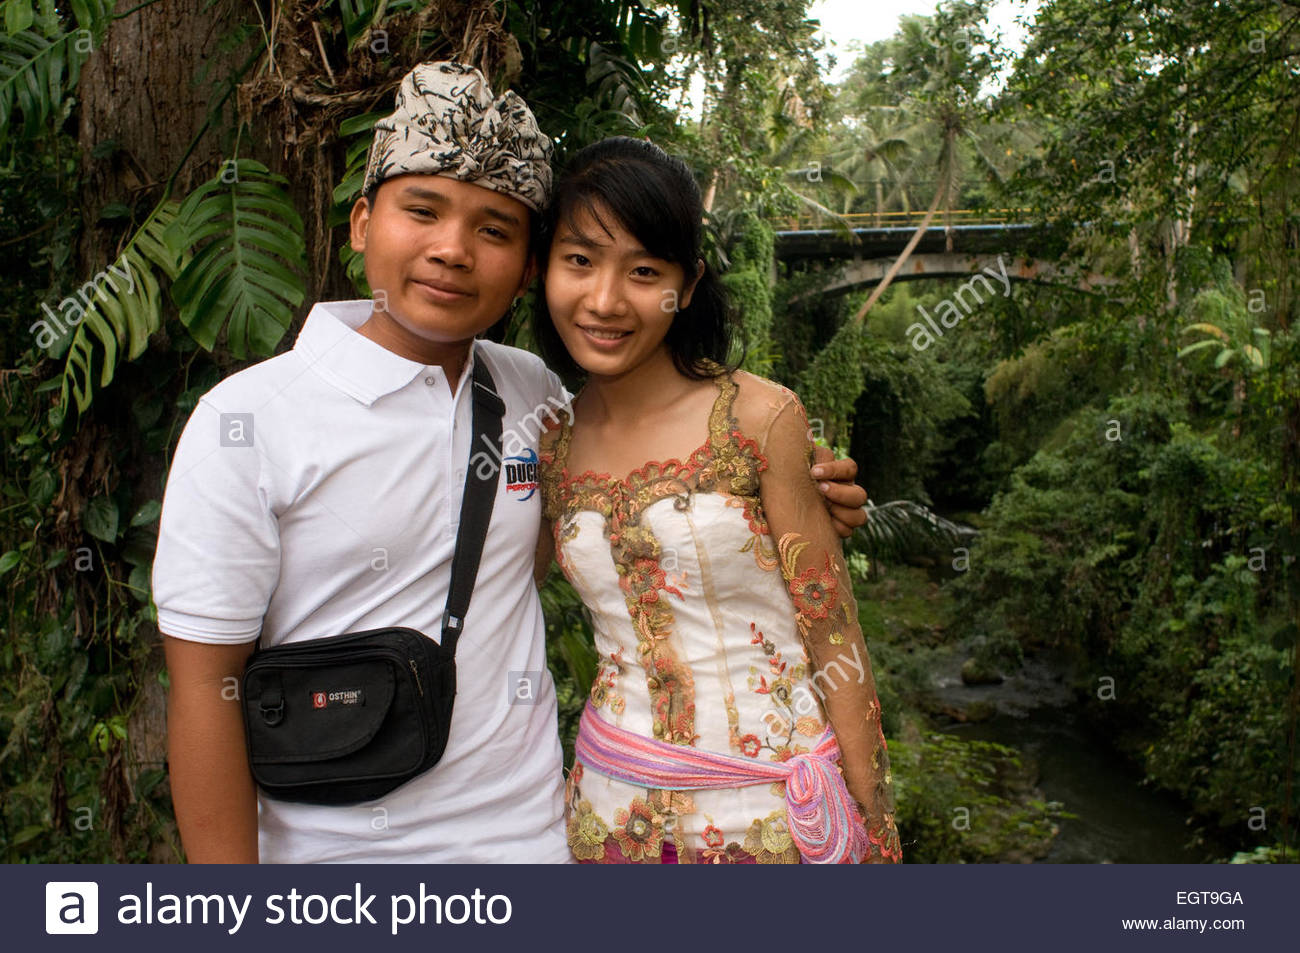 A couple in front of the temple Pura Gunung Lebah, Ubud, Bali, Gunung Lebah was constructed in the 8th century by - Stock Image